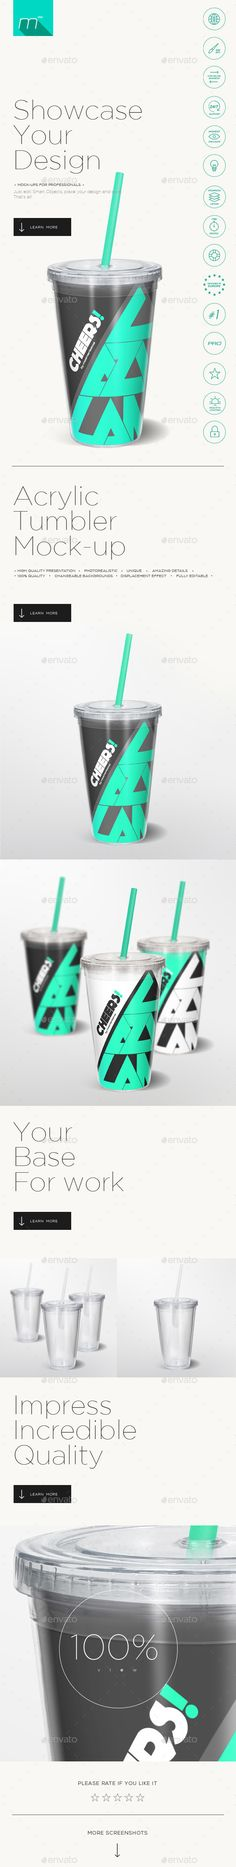 Acrylic Tumbler Mock-up #design Download: http://graphicriver.net/item/acrylic-tumbler-mockup/13936804?ref=ksioks